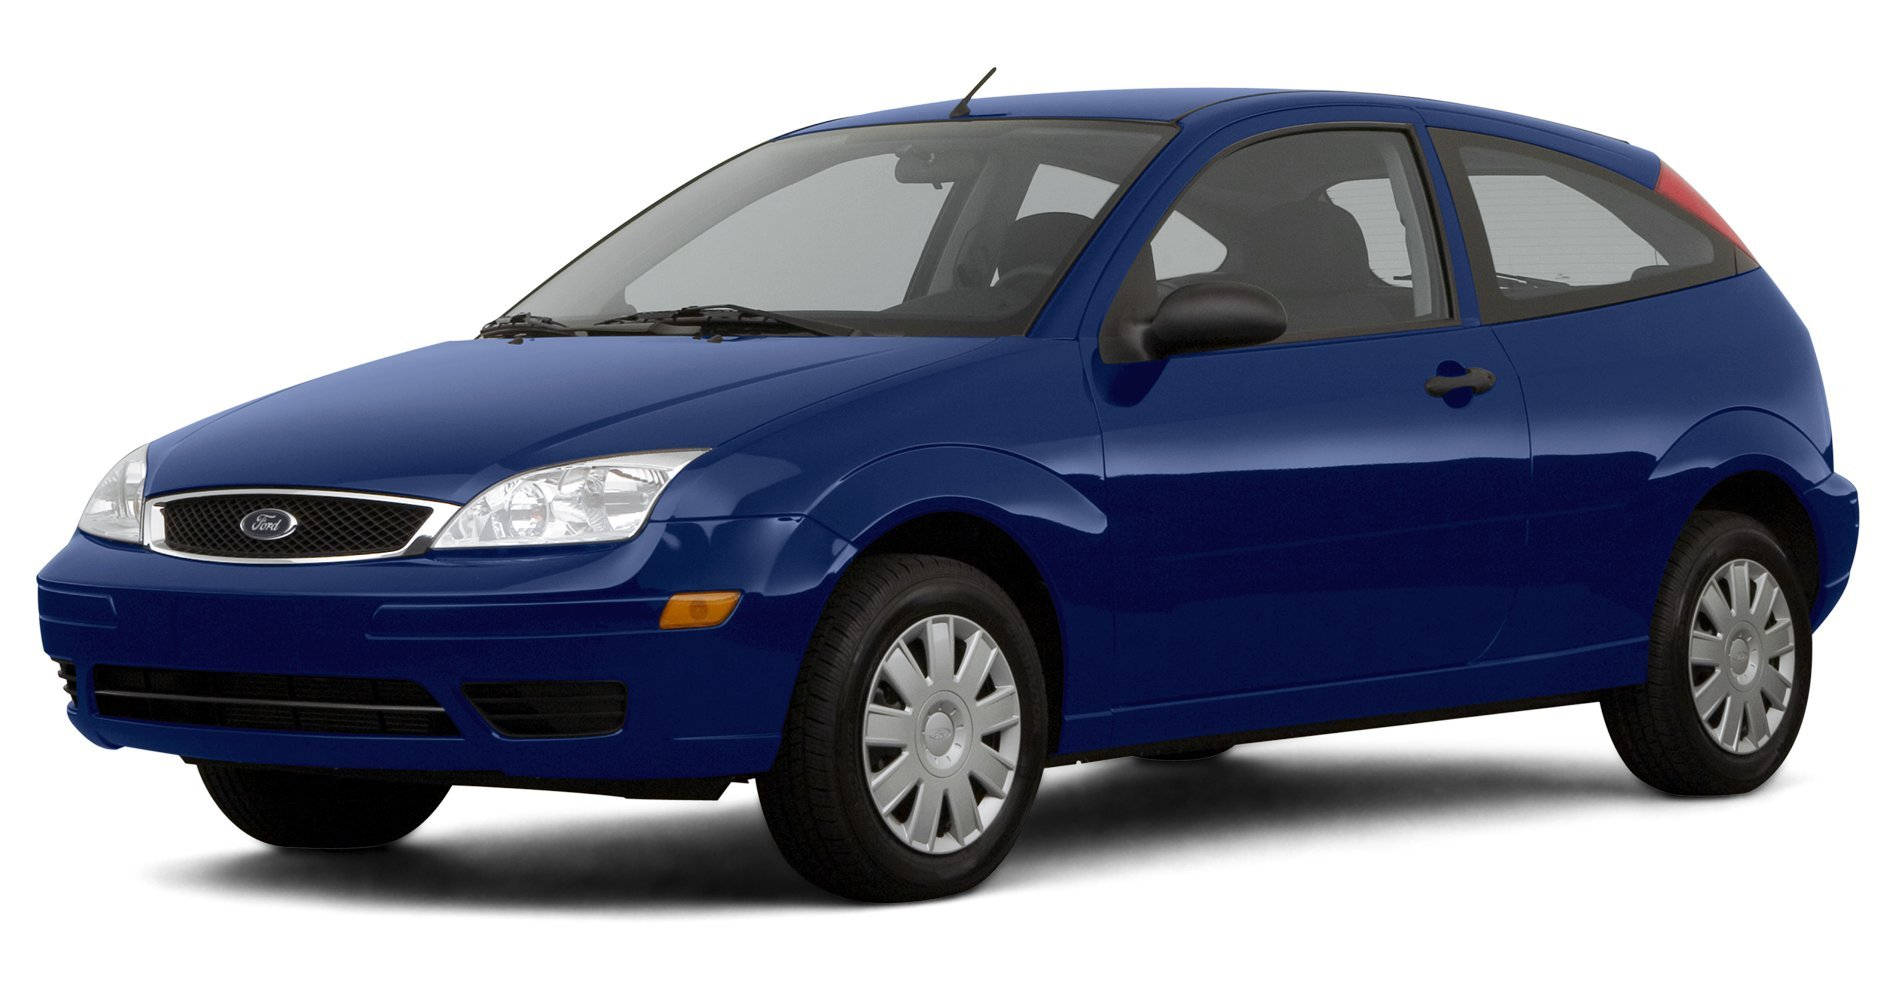 2007 Chevrolet Cobalt LS, 2-Door Coupe, 2007 Ford Focus S, 3-Door Coupe ...